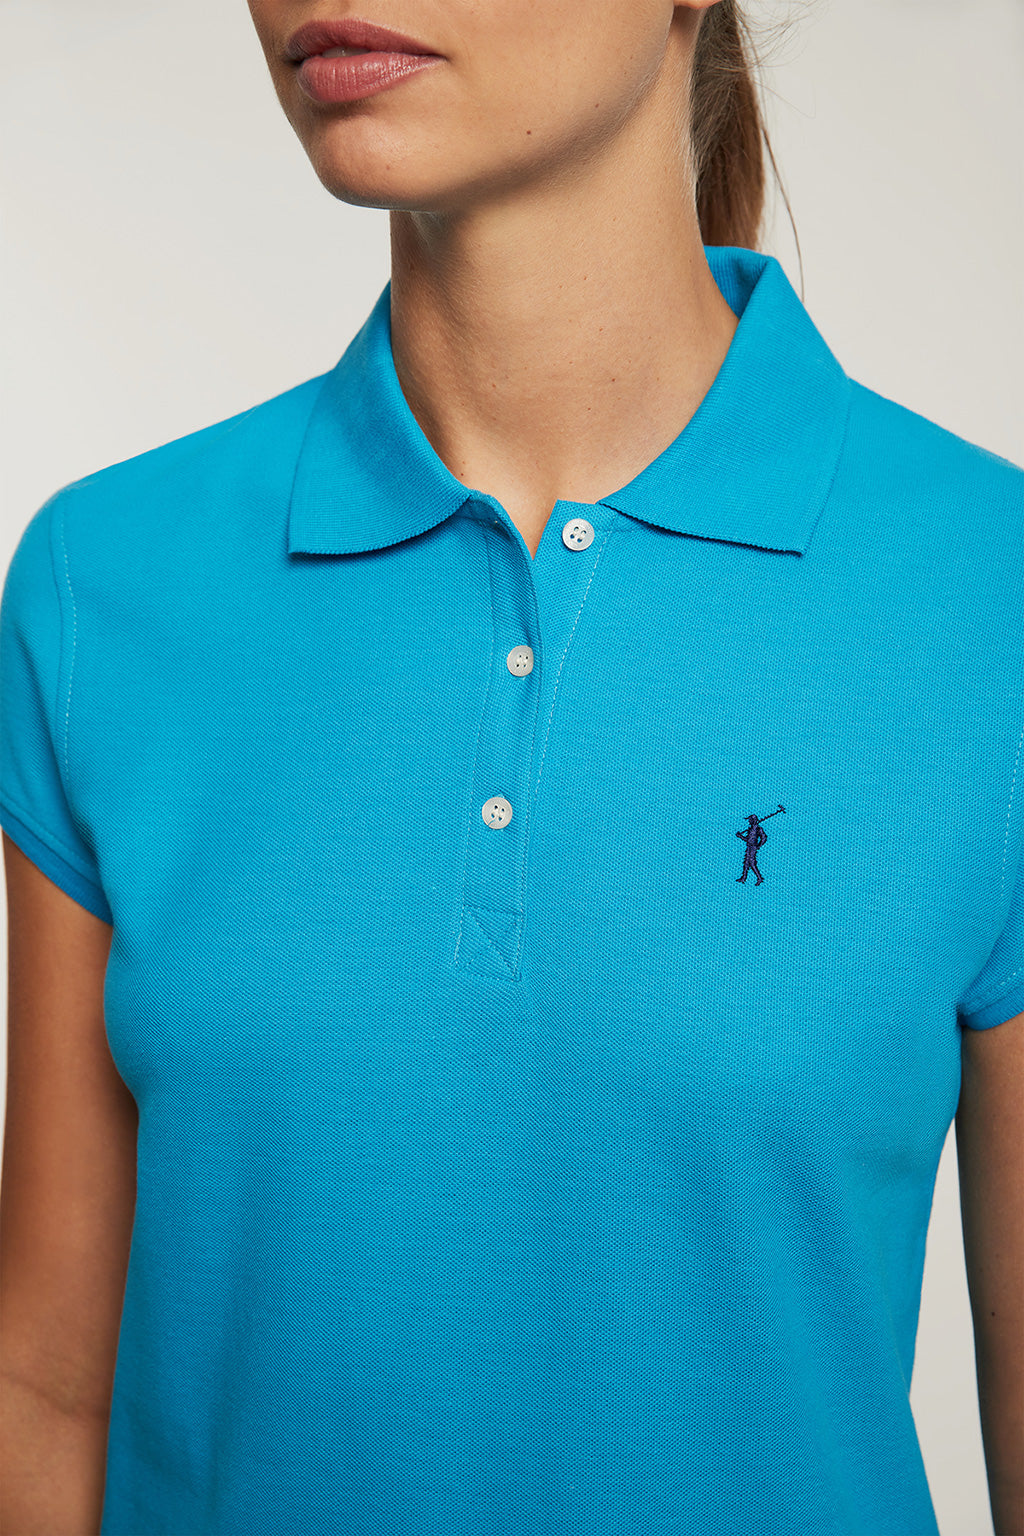 Turquoise polo shirt with embroidered logo